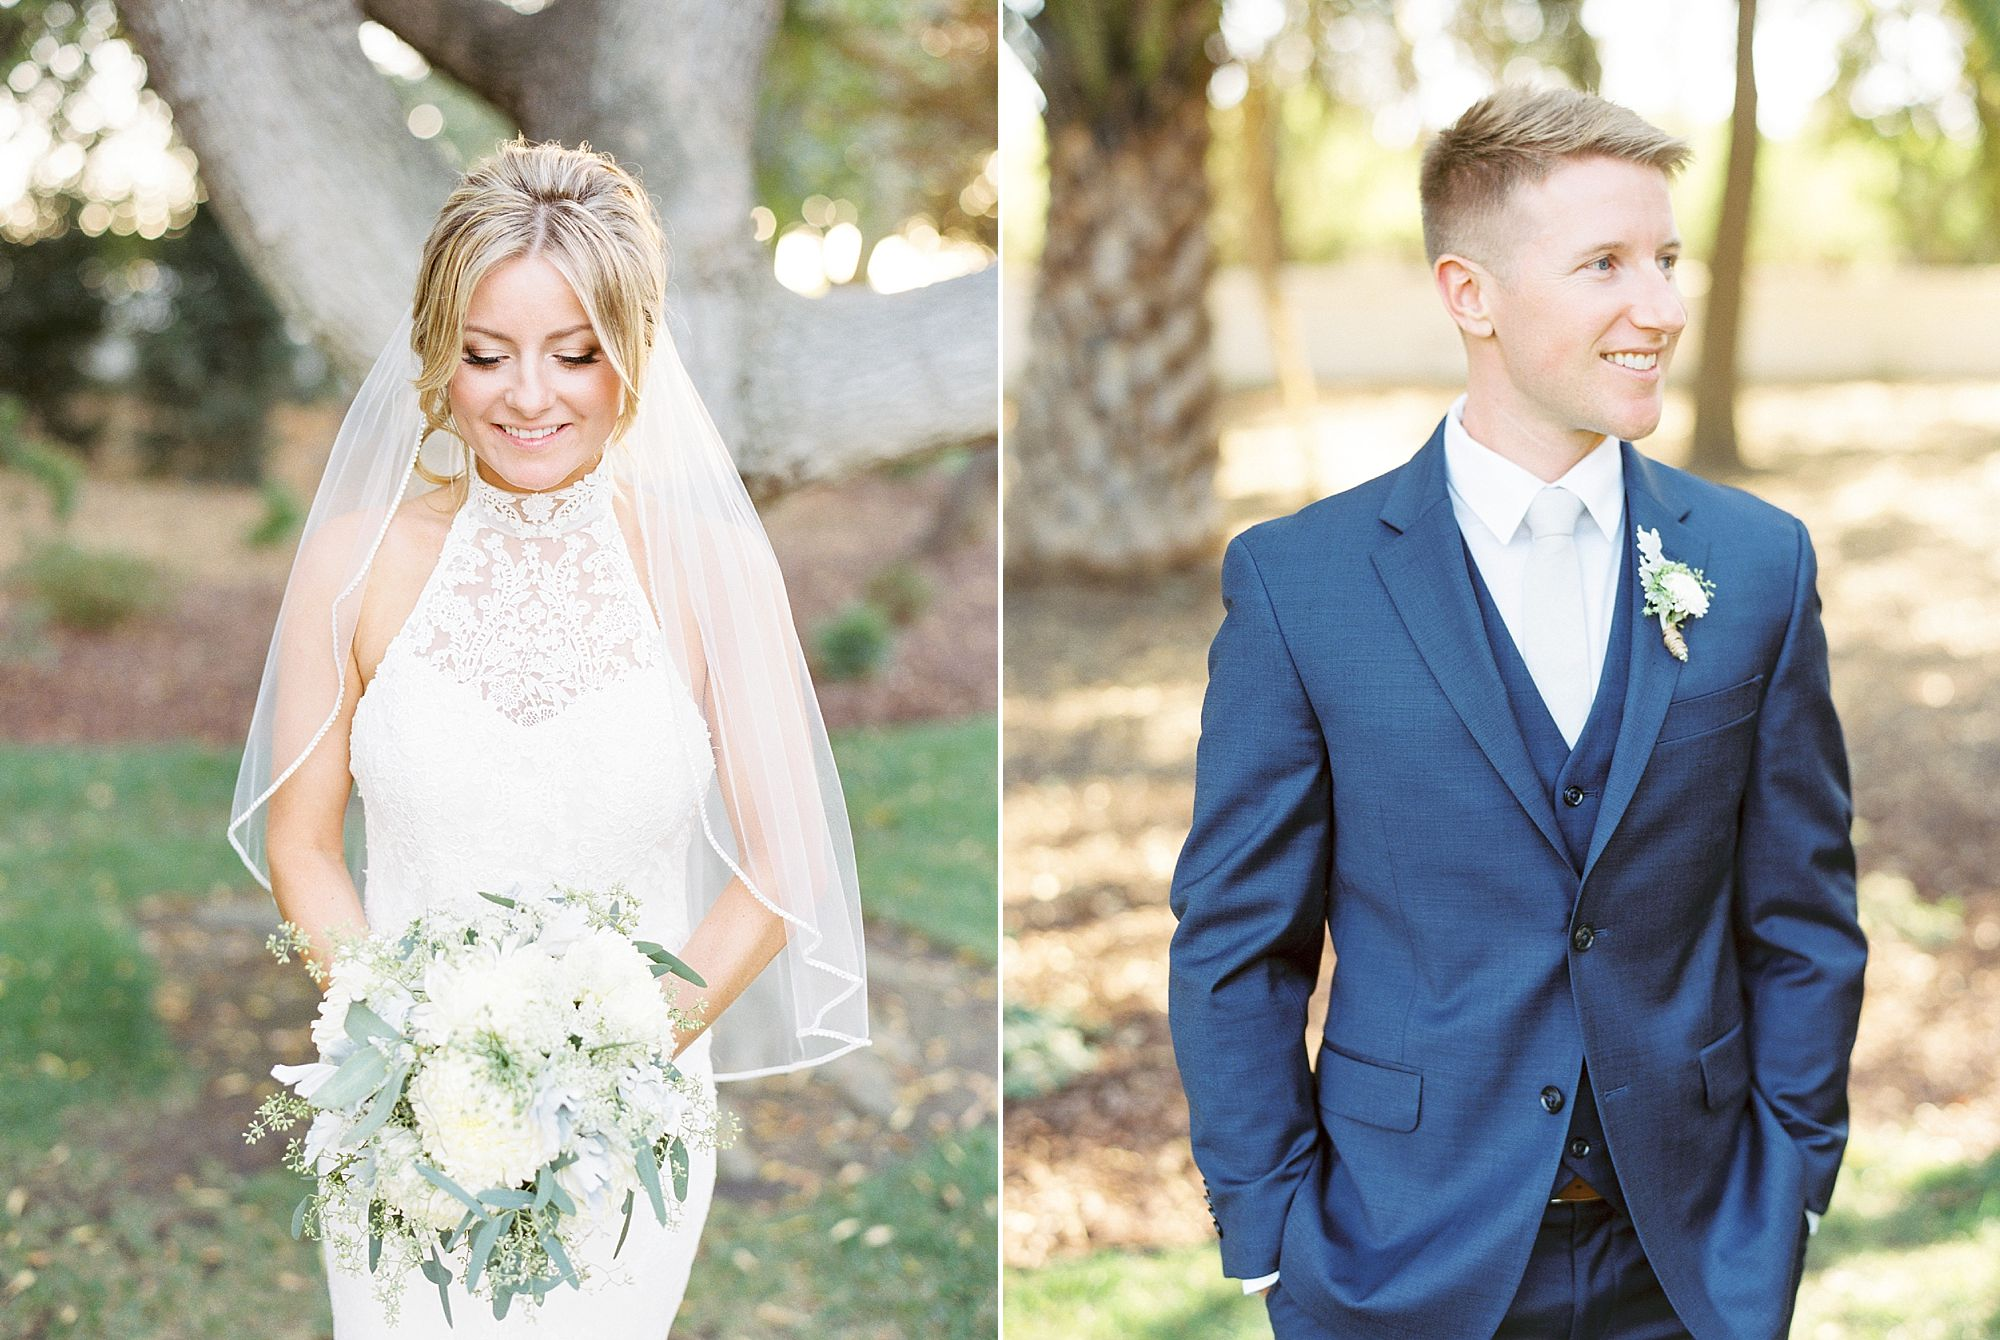 The Maples Wedding in Woodland California - Ashley Baumgartner - Sacramento Wedding Photographer - Sacramento Film Photographer_0032.jpg